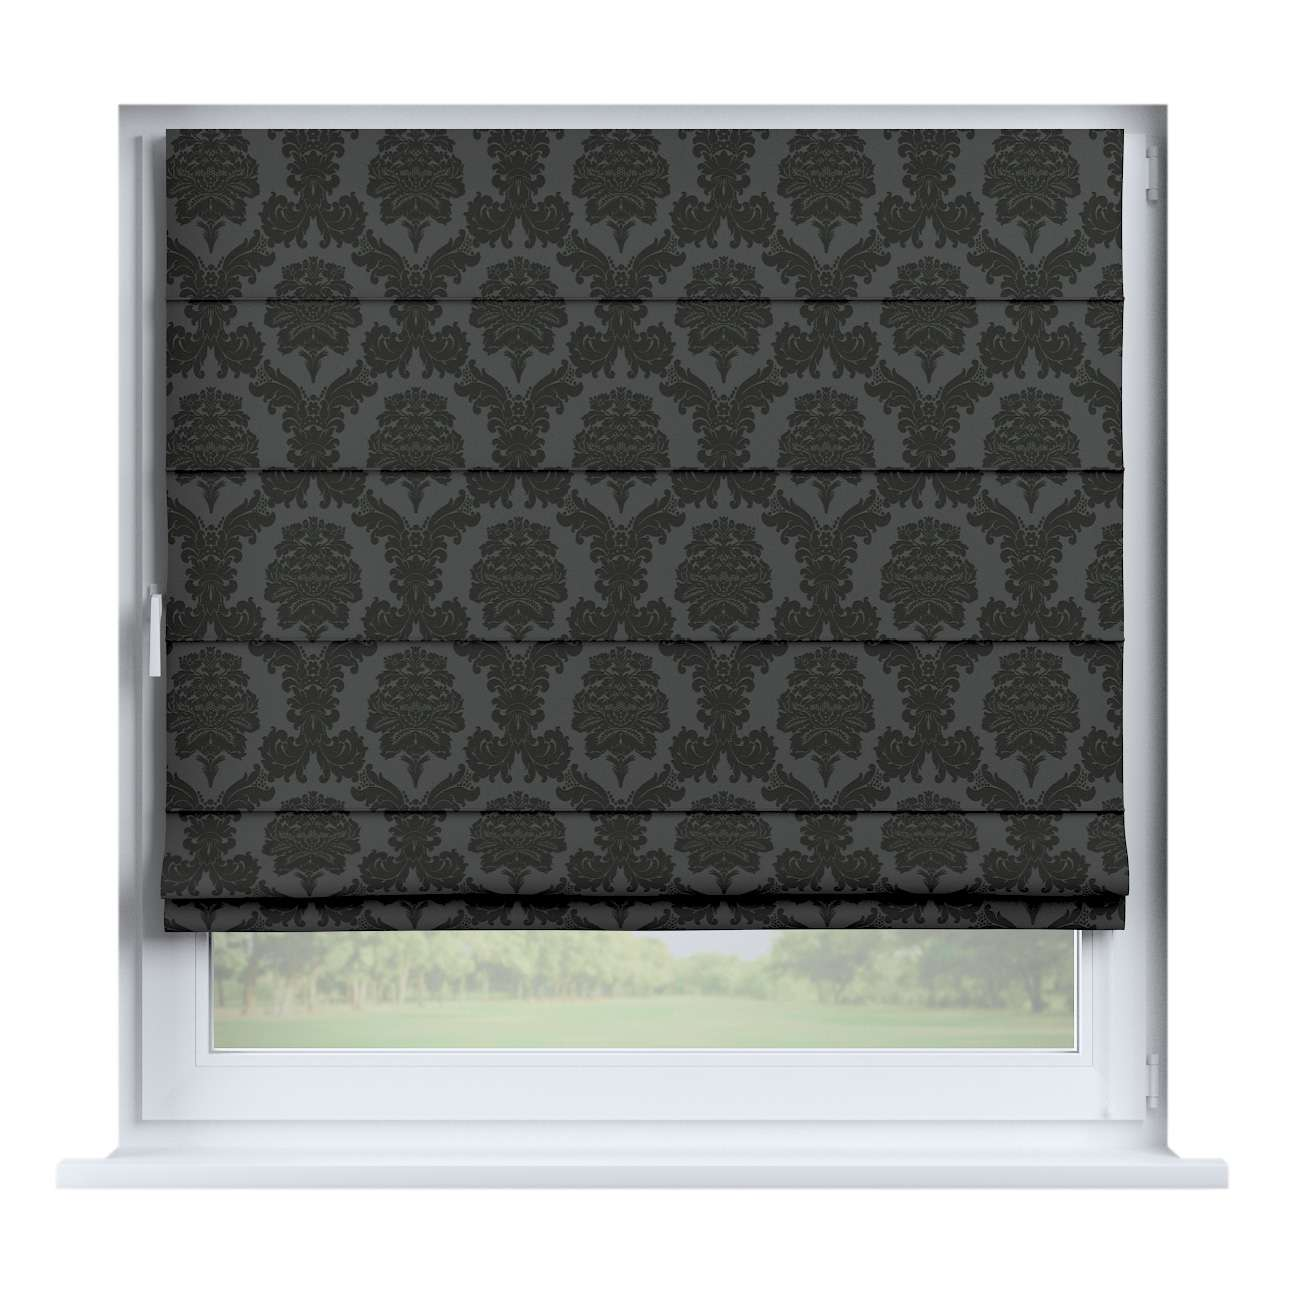 Capri roman blind 80 x 170 cm (31.5 x 67 inch) in collection Damasco, fabric: 613-32